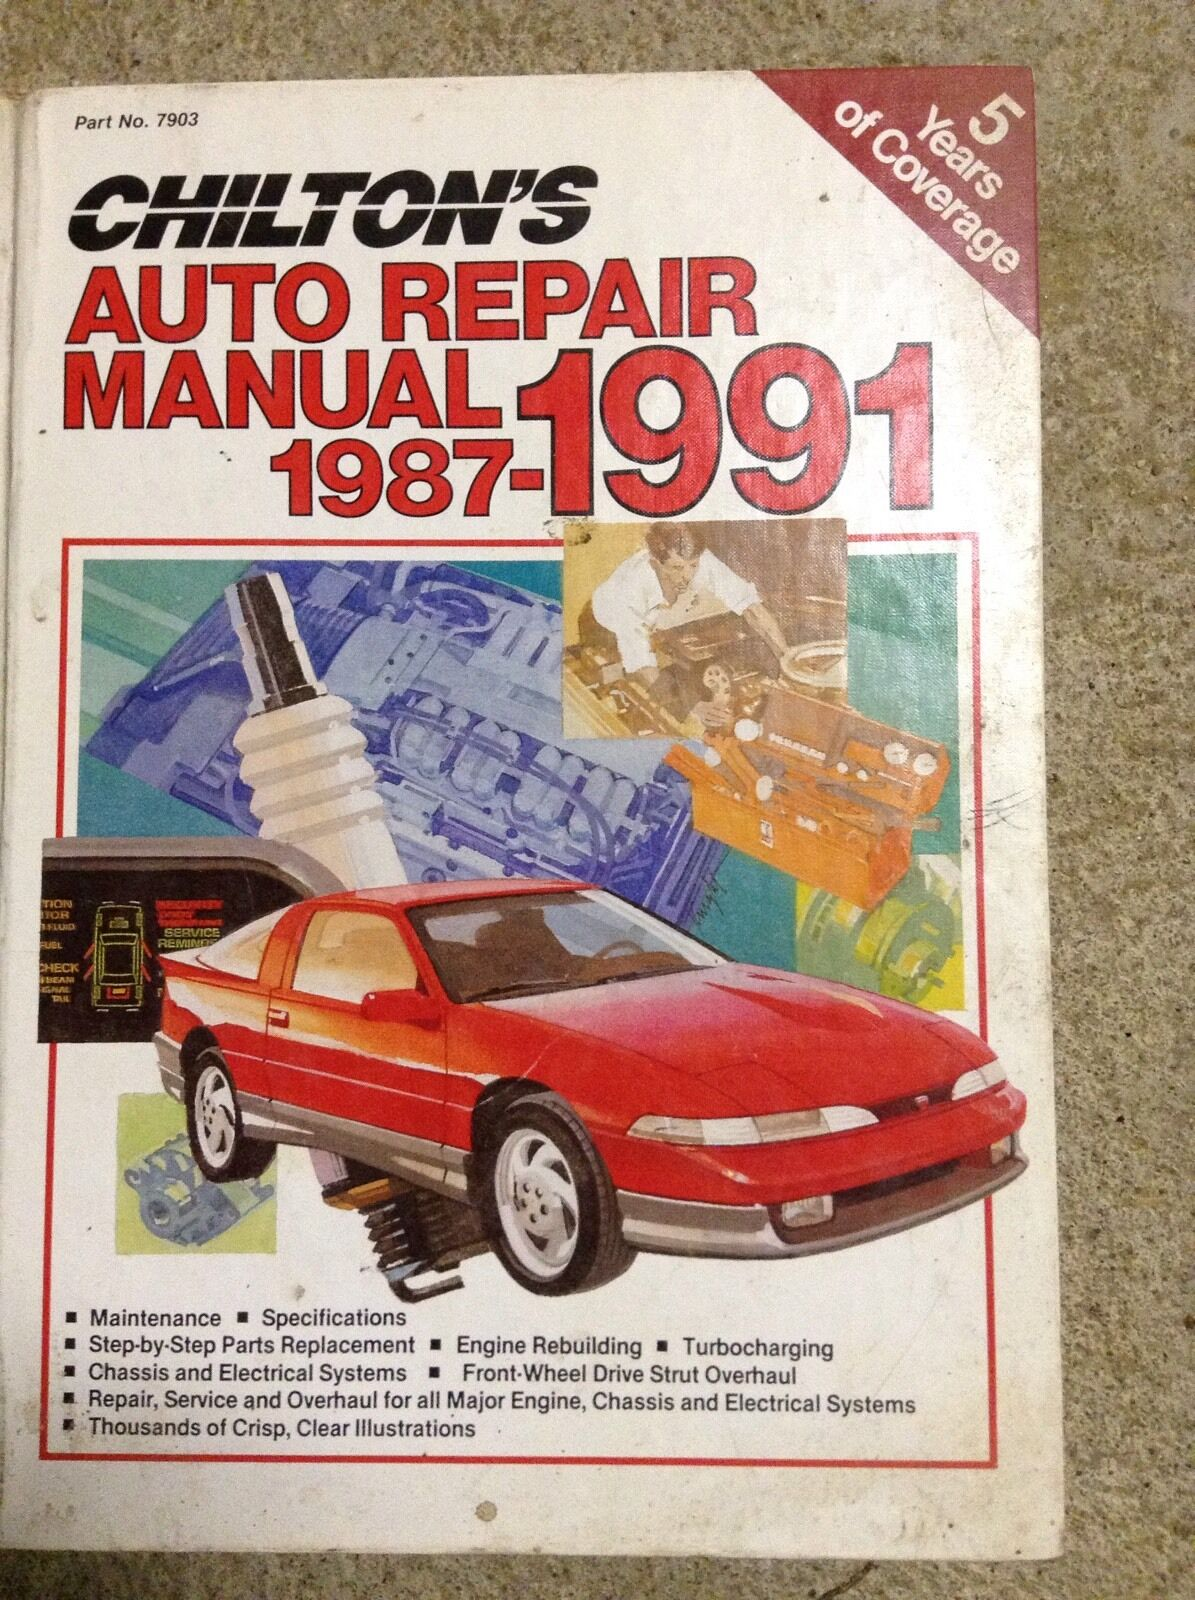 Chilton's Auto Repair Manual 1987-1991 1 of 1Only 1 available ...